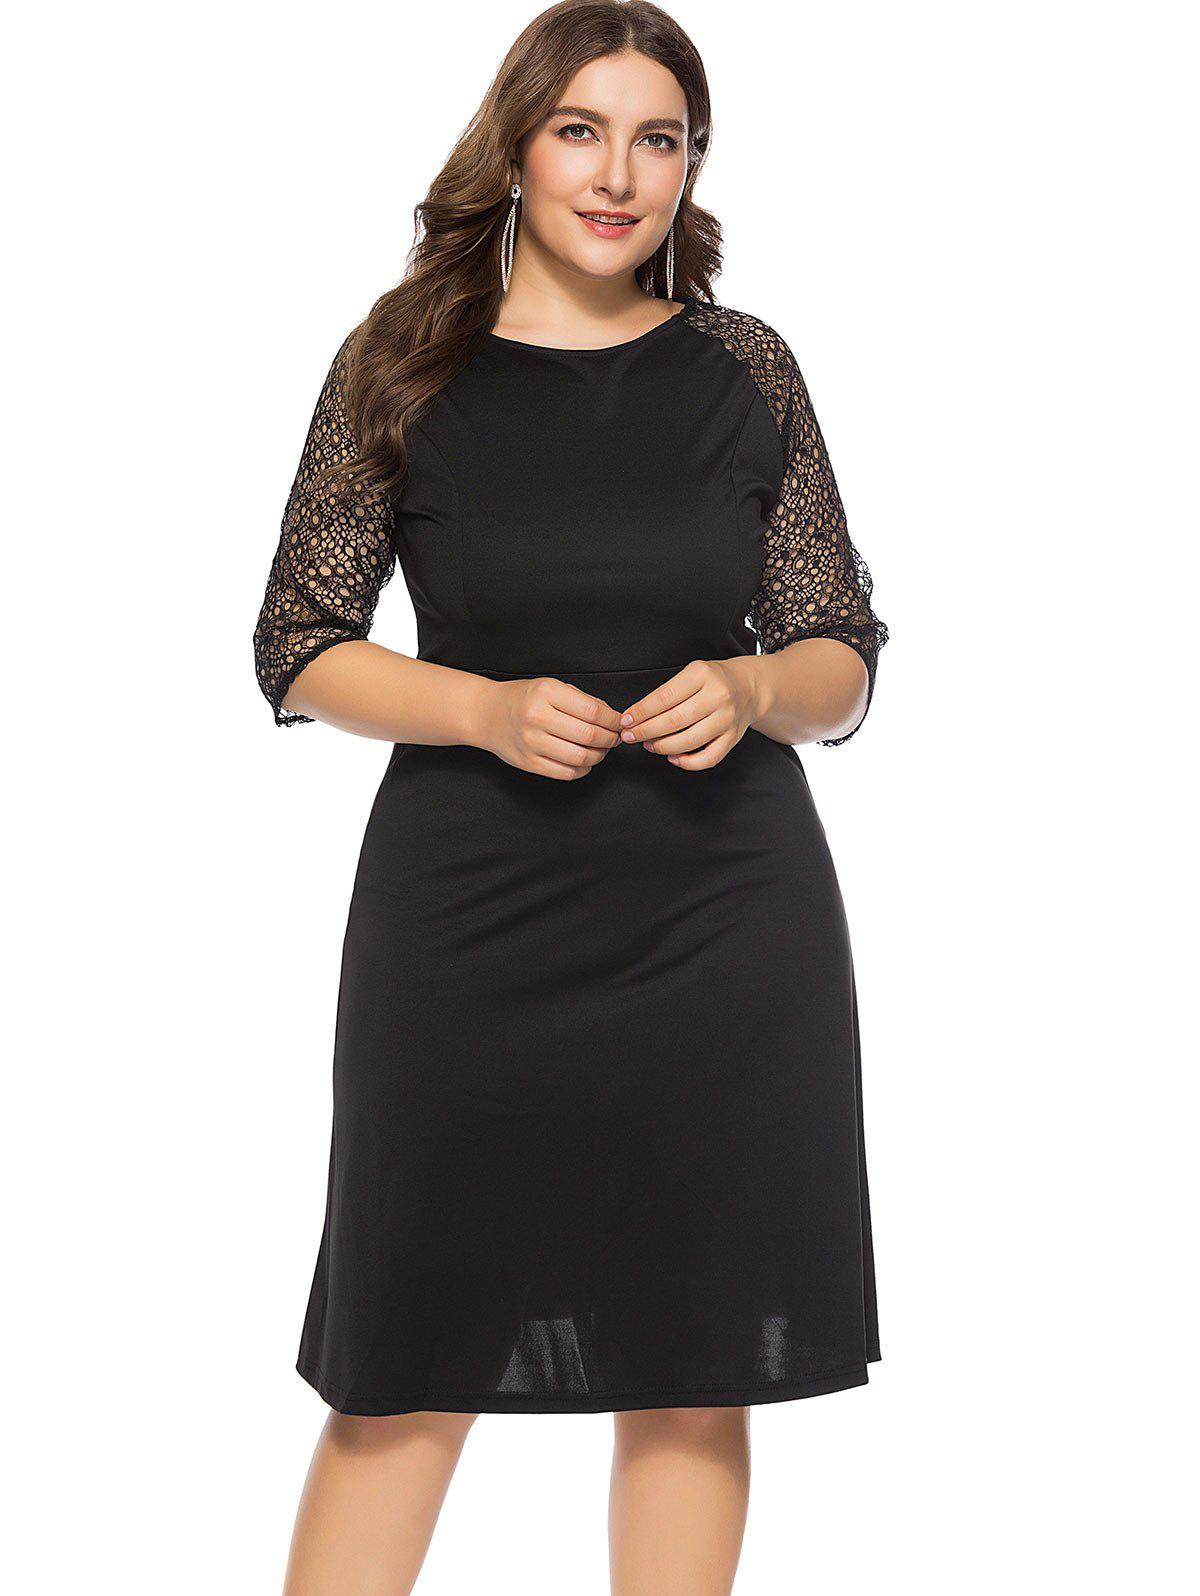 44% OFF] Plus Size Lace Knee Length Dress | Rosegal